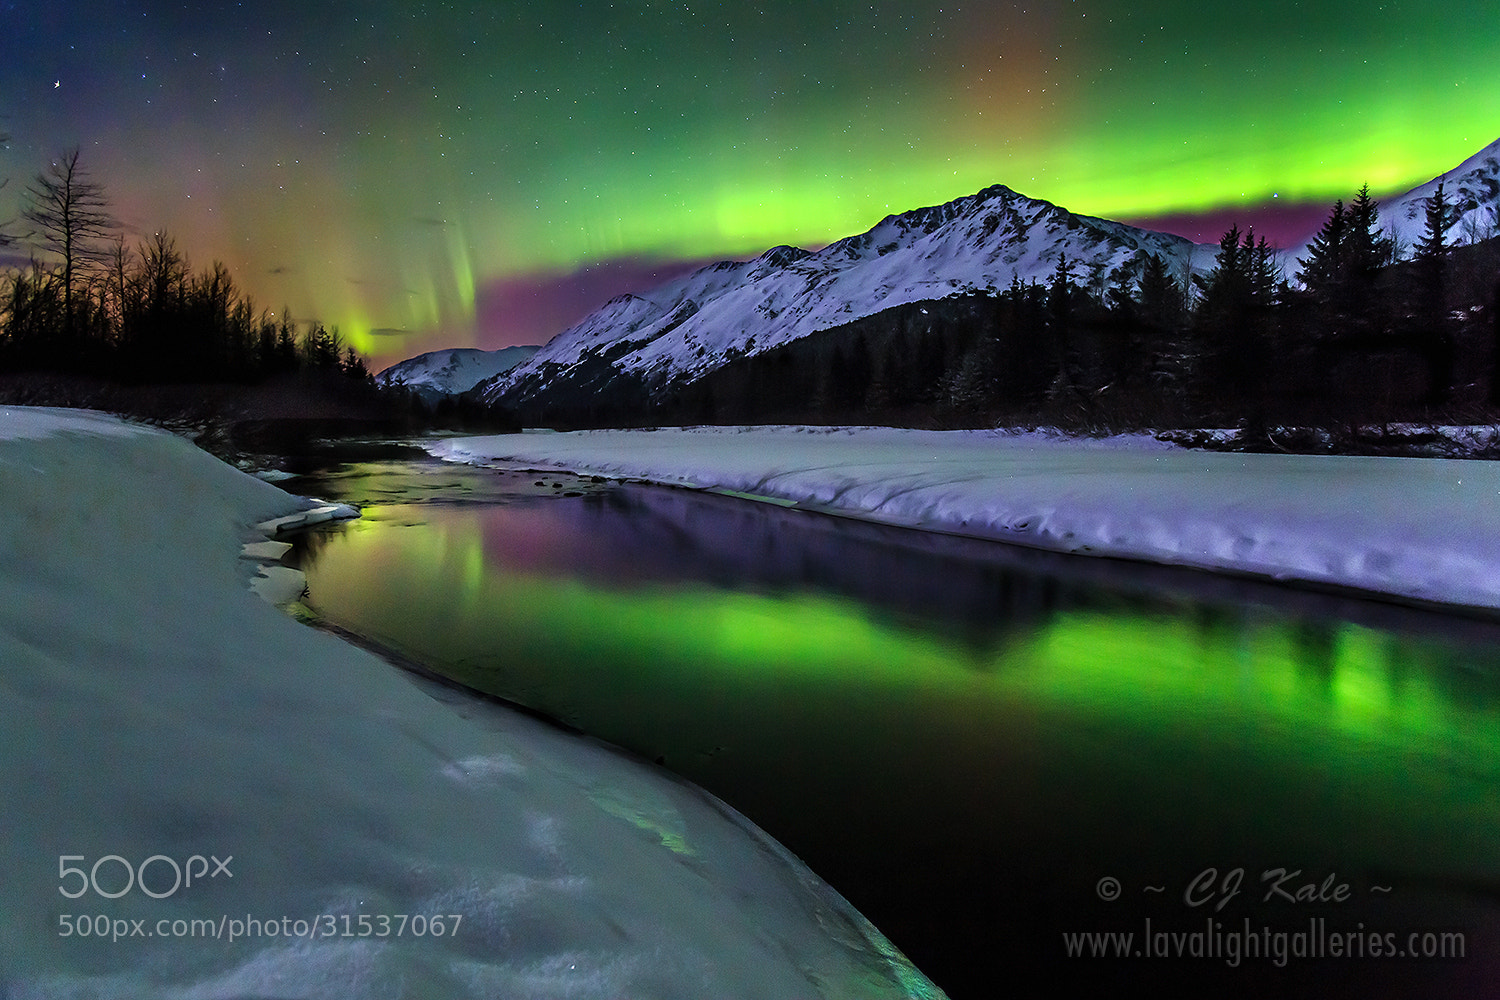 Photograph Aurora reflections by Cj Kale on 500px